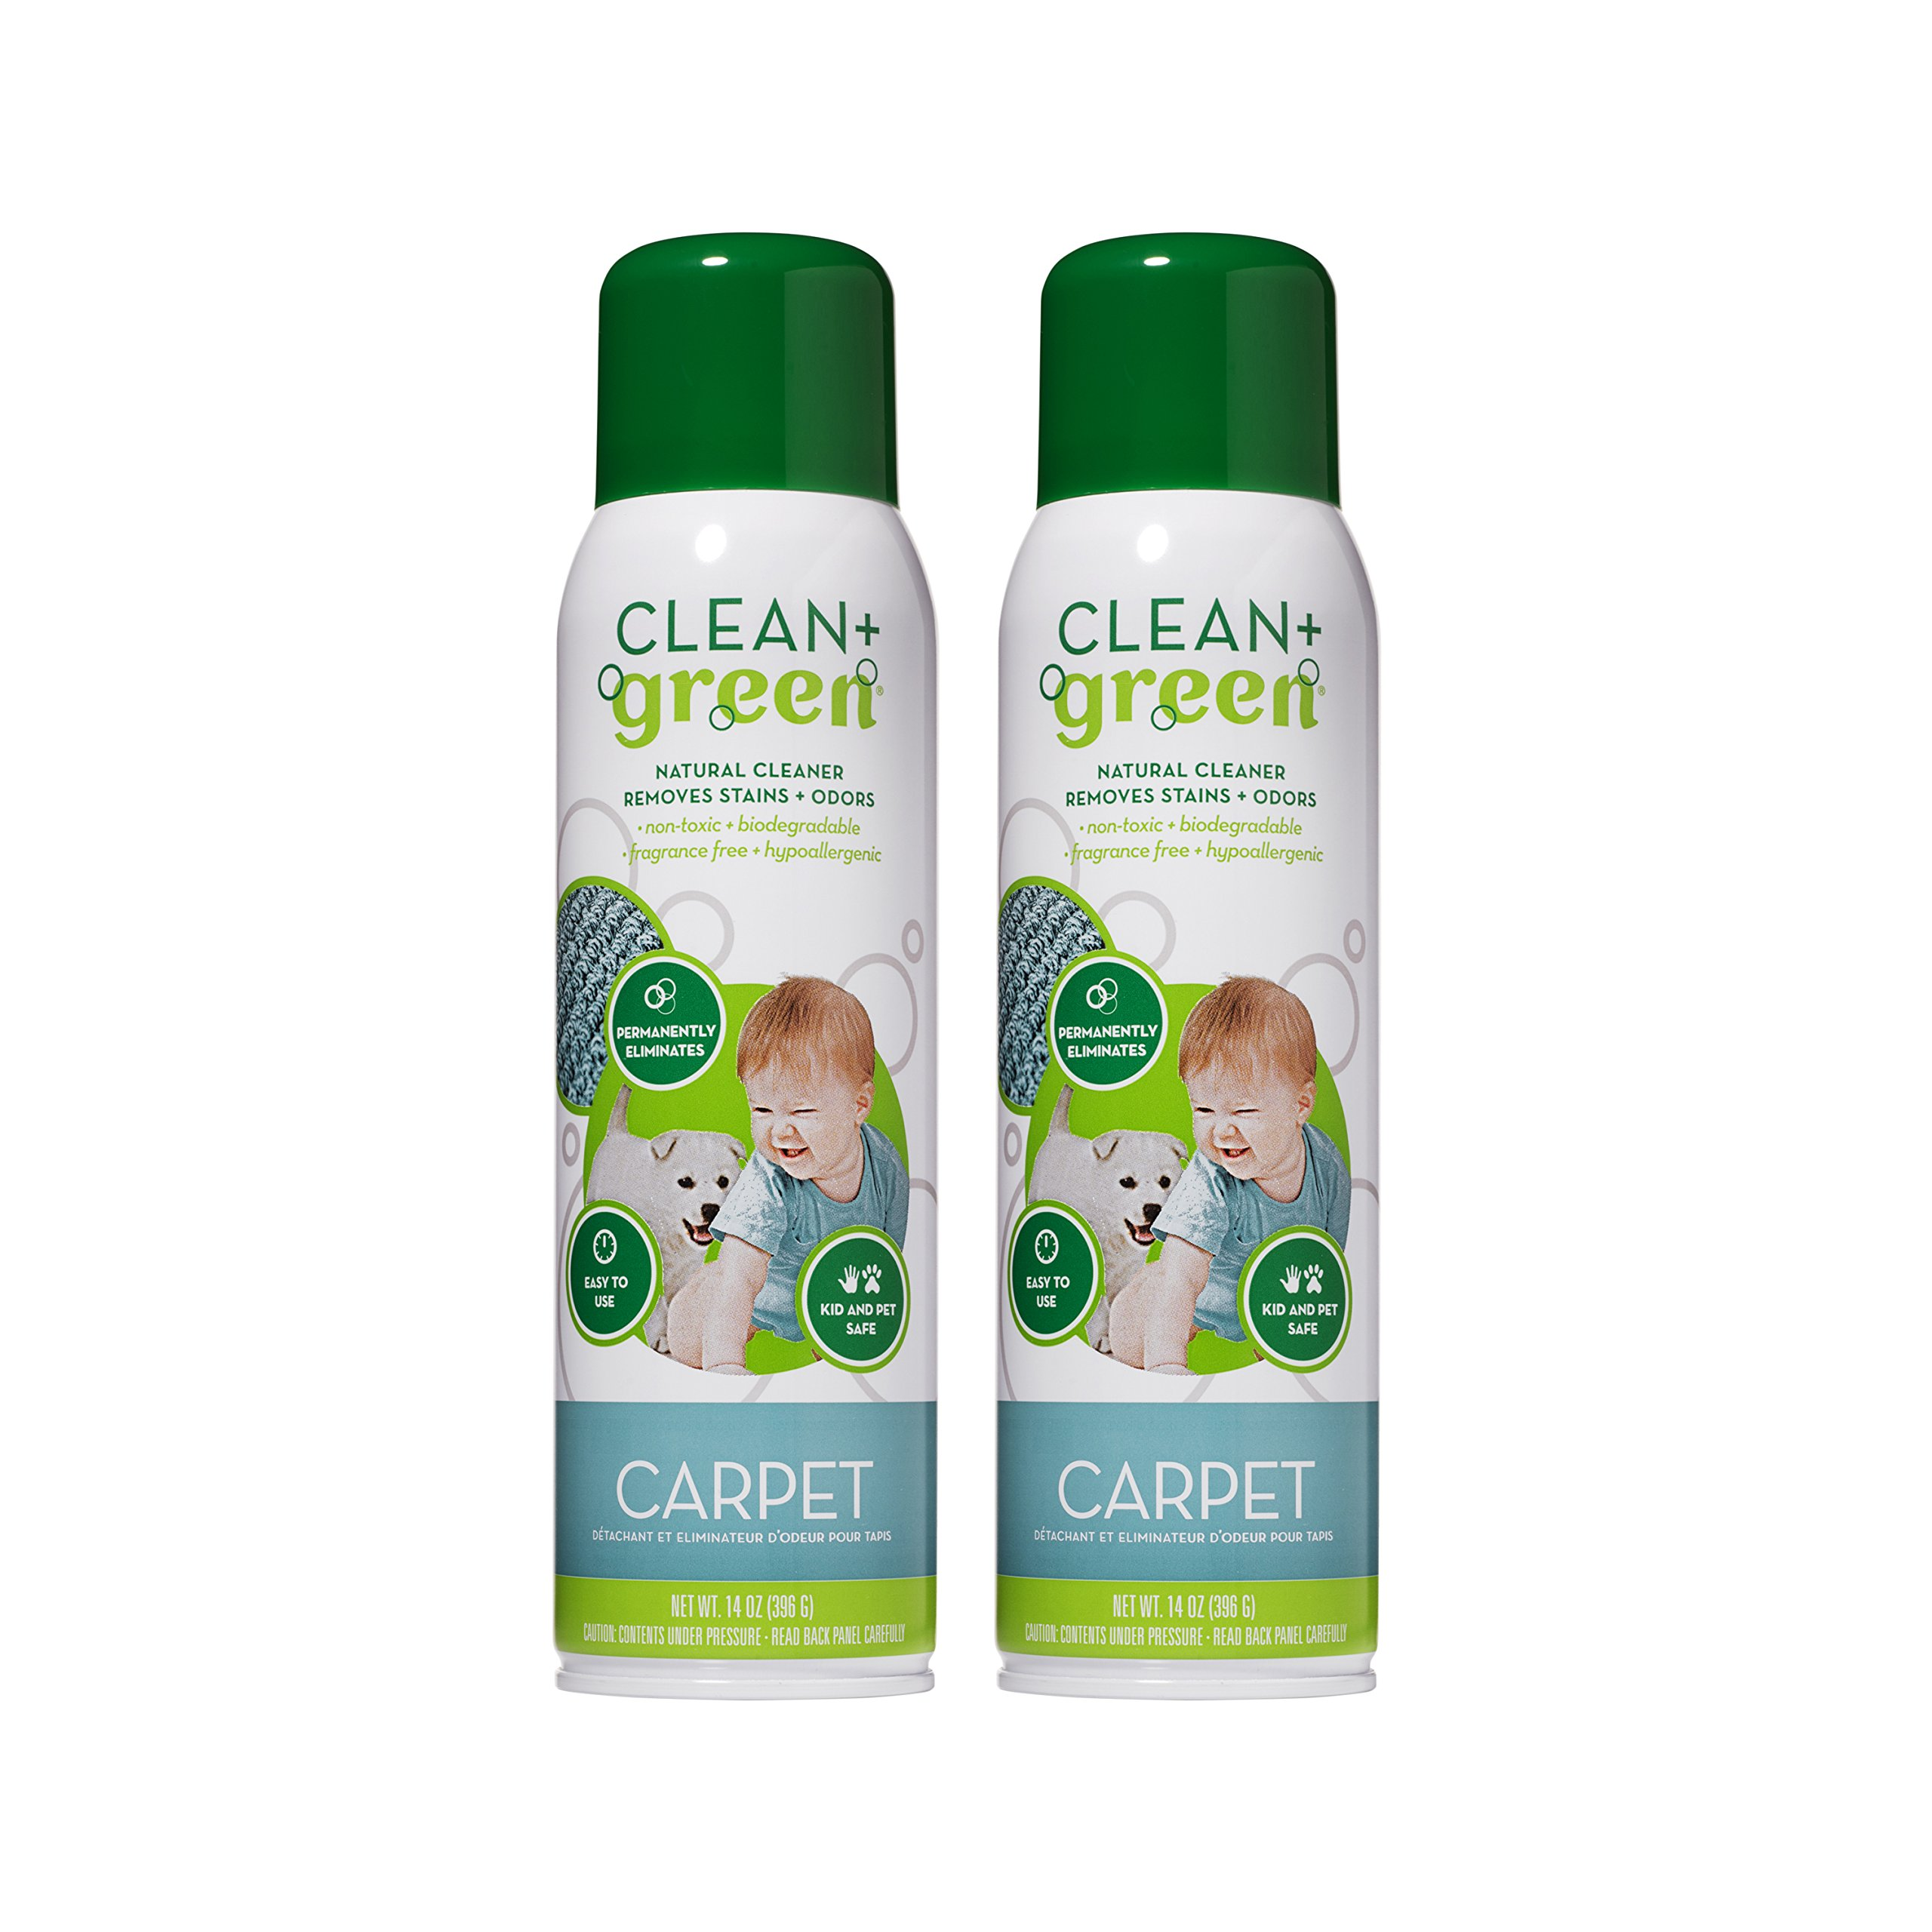 Non-Toxic Natural Carpet Rug Stain Remover, Deodorizer, Odor Eliminator – Multi Purpose Spray- Safe for Children, Pets, People, and Environment (14oz) (2 Pack) by Clean+Green (Image #1)